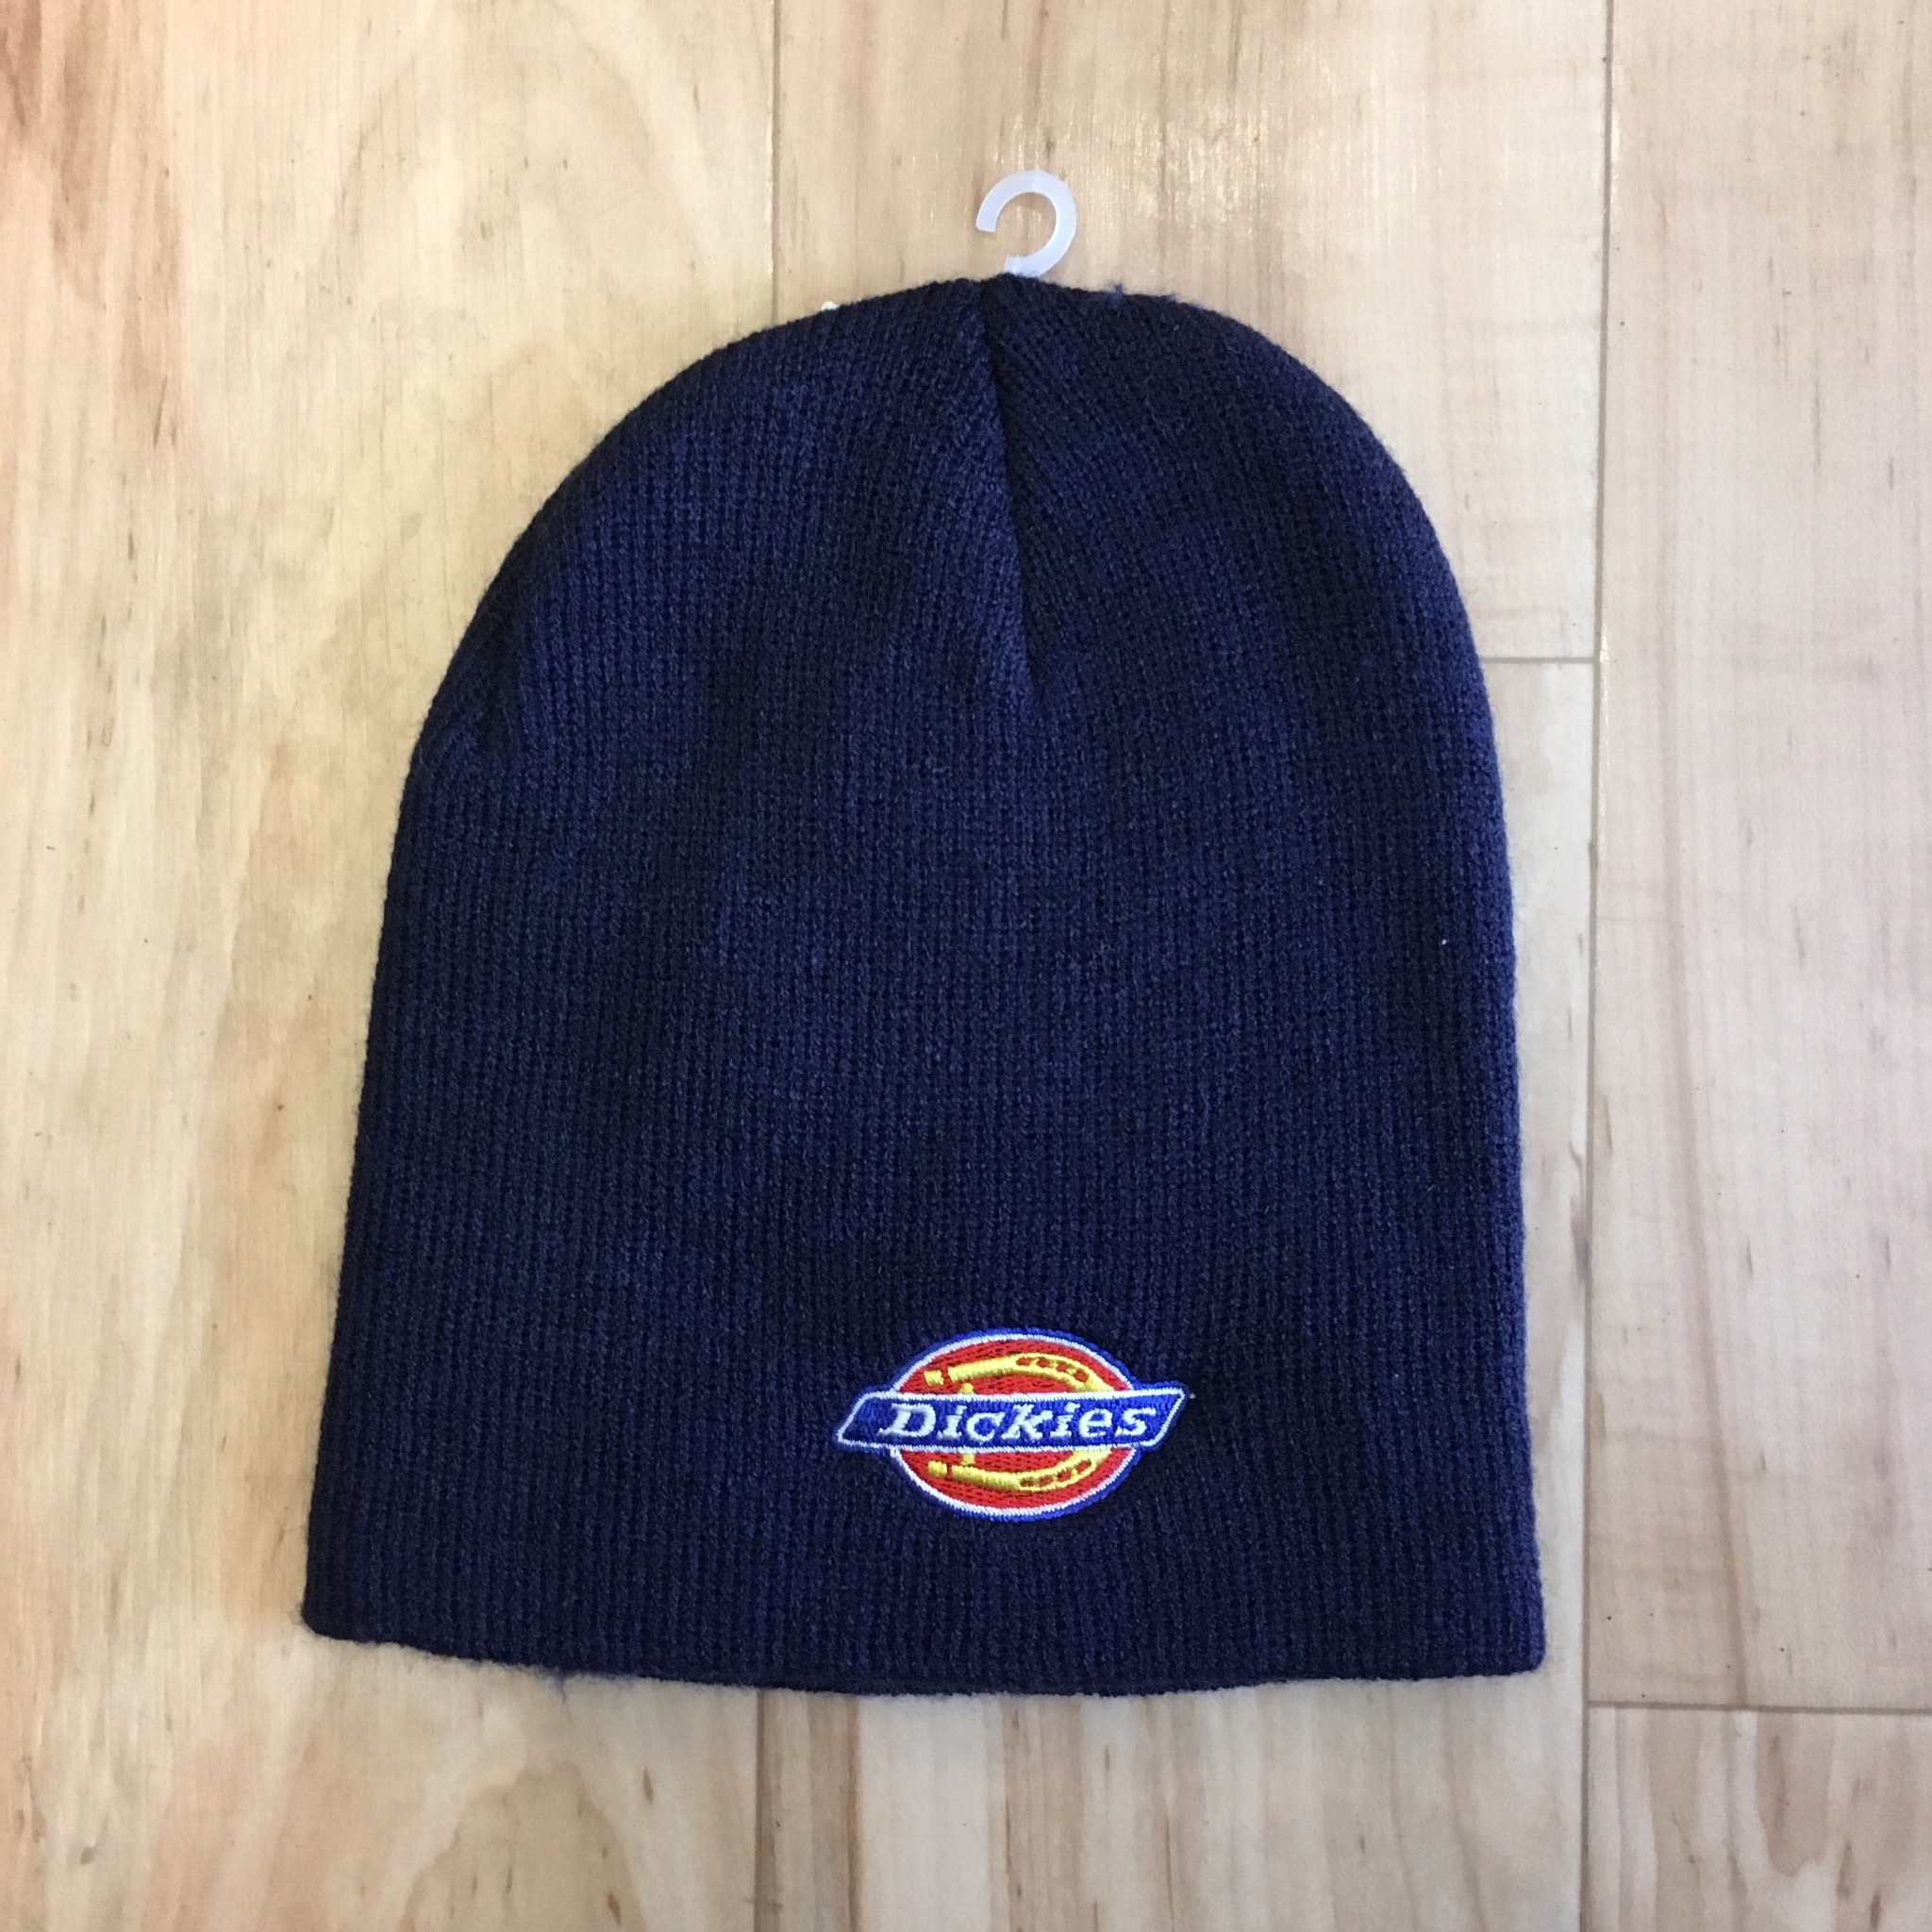 Dickies LOGO EMBROIDERY Beanie-NAVY <Deadstock>